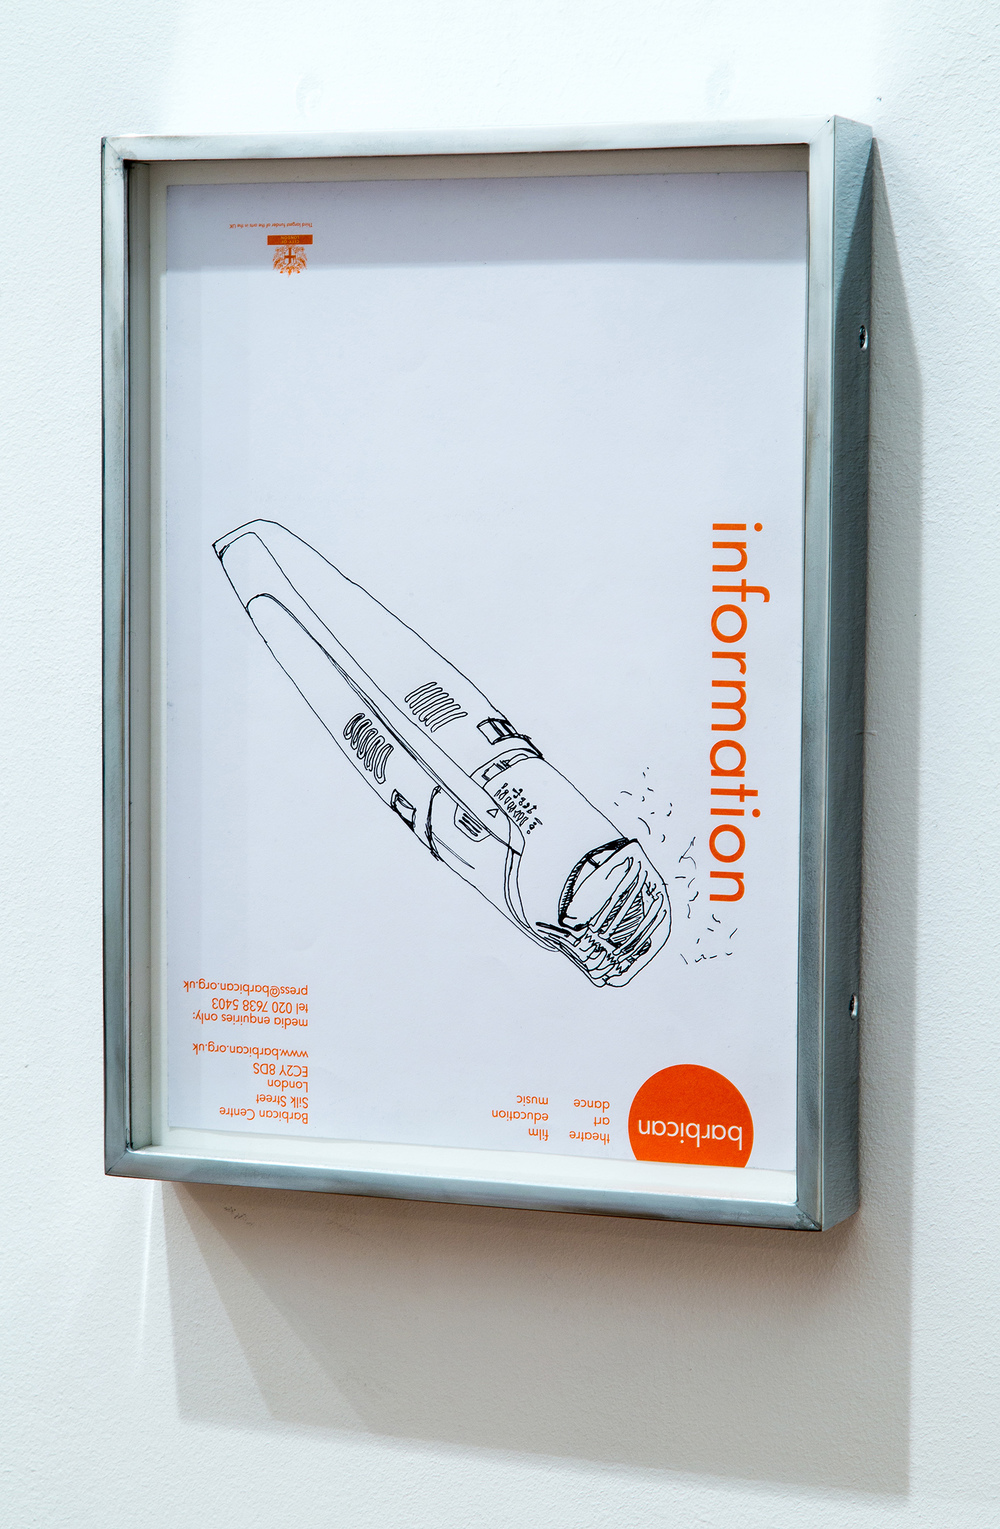 Philips Norelco TR980 Turbo Vacuum Trimmer (broken), Great Arthur House, #44, Fann Street, Golden Lane Estate, London, EC1, September 17, 2014    2014   Ink on paper  12 1/2 x 10 inches   Drawings, 2014–